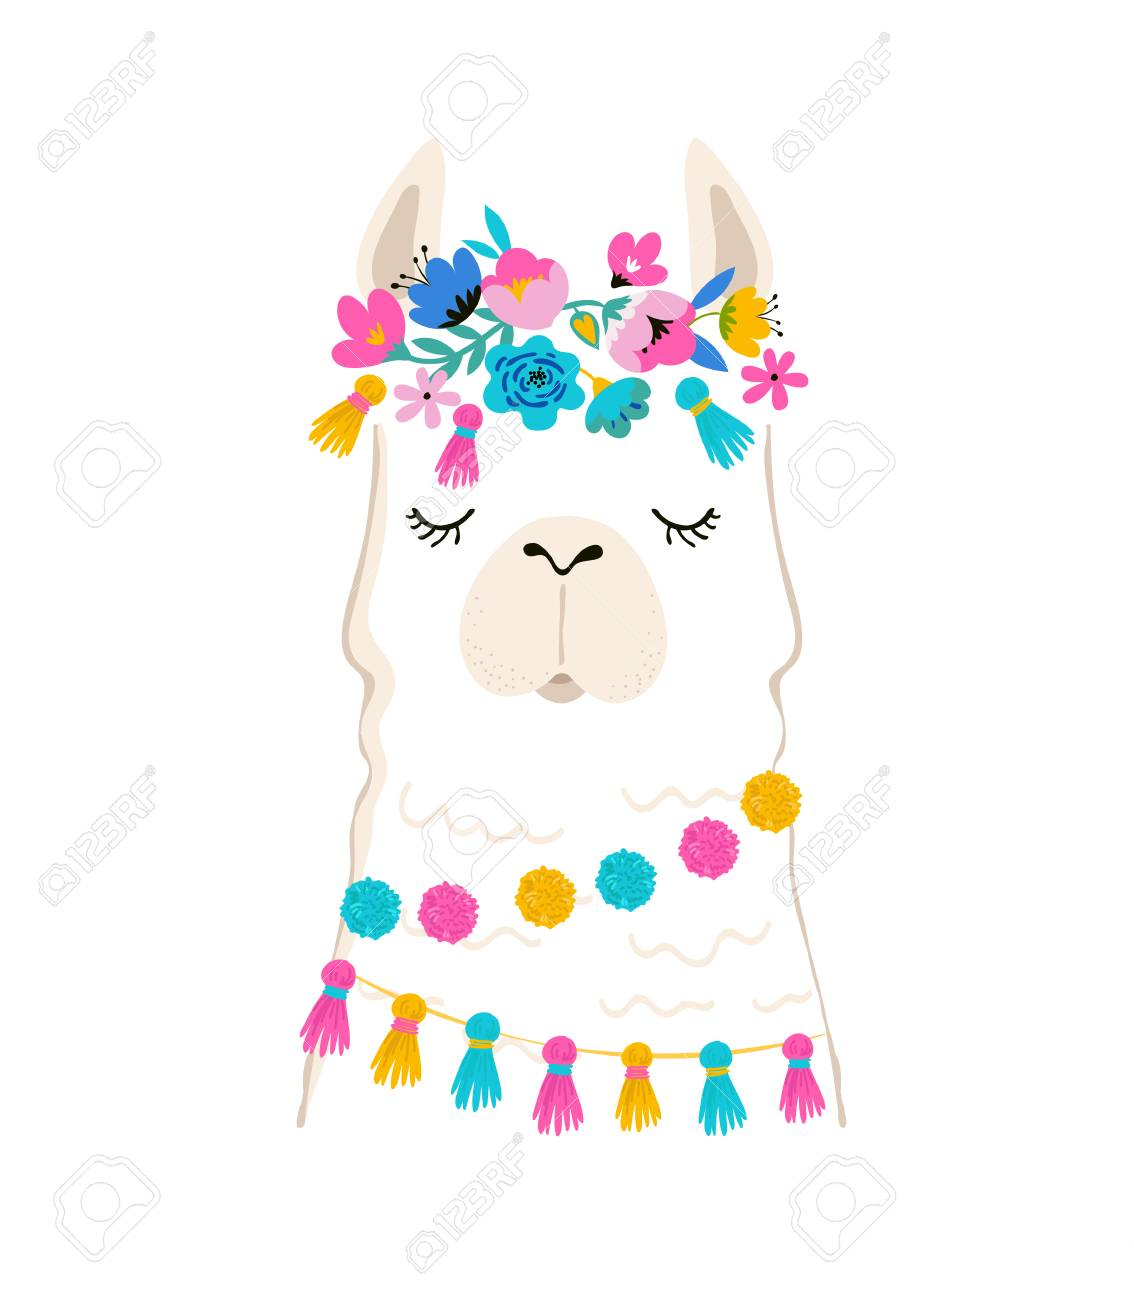 Llama illustration, cute hand drawn elements and design for nursery...